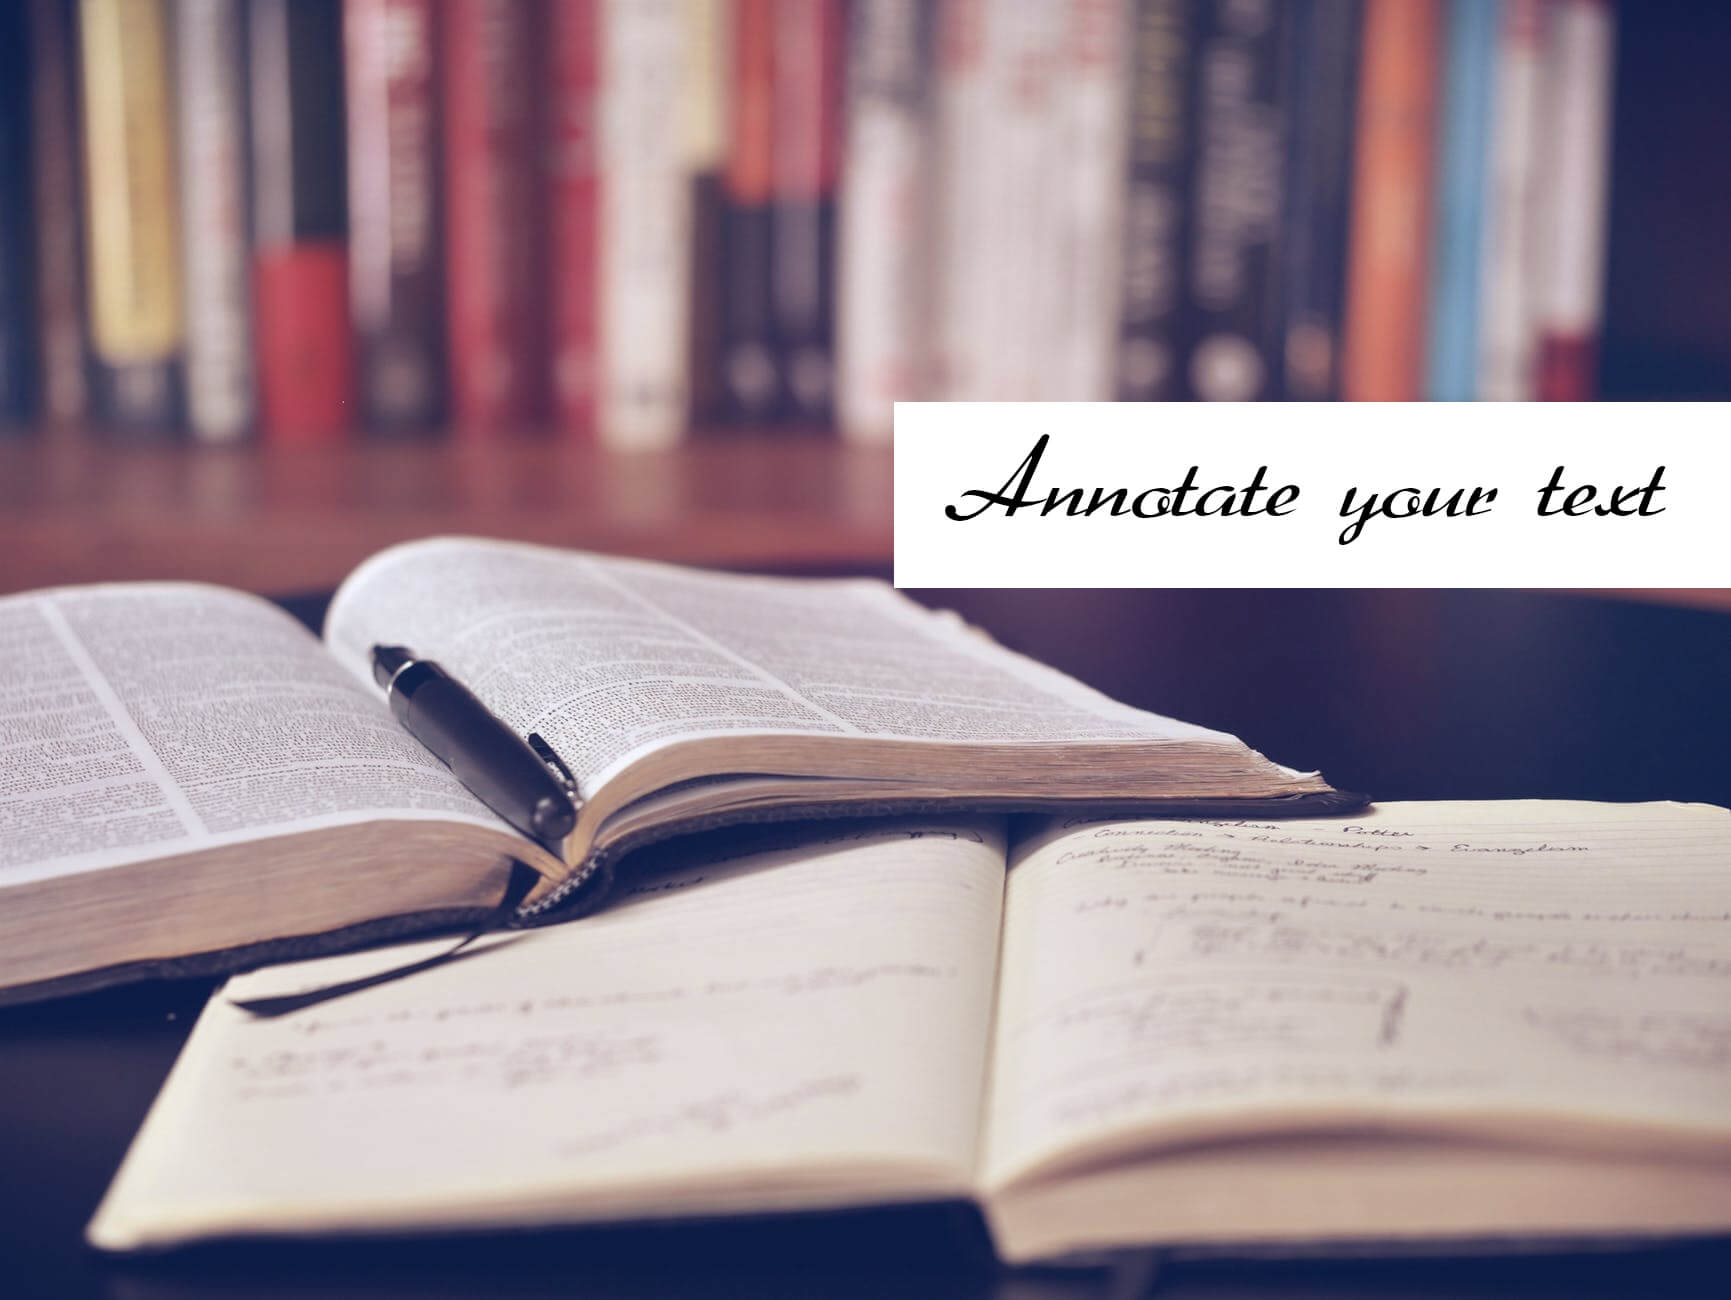 Annotate your text